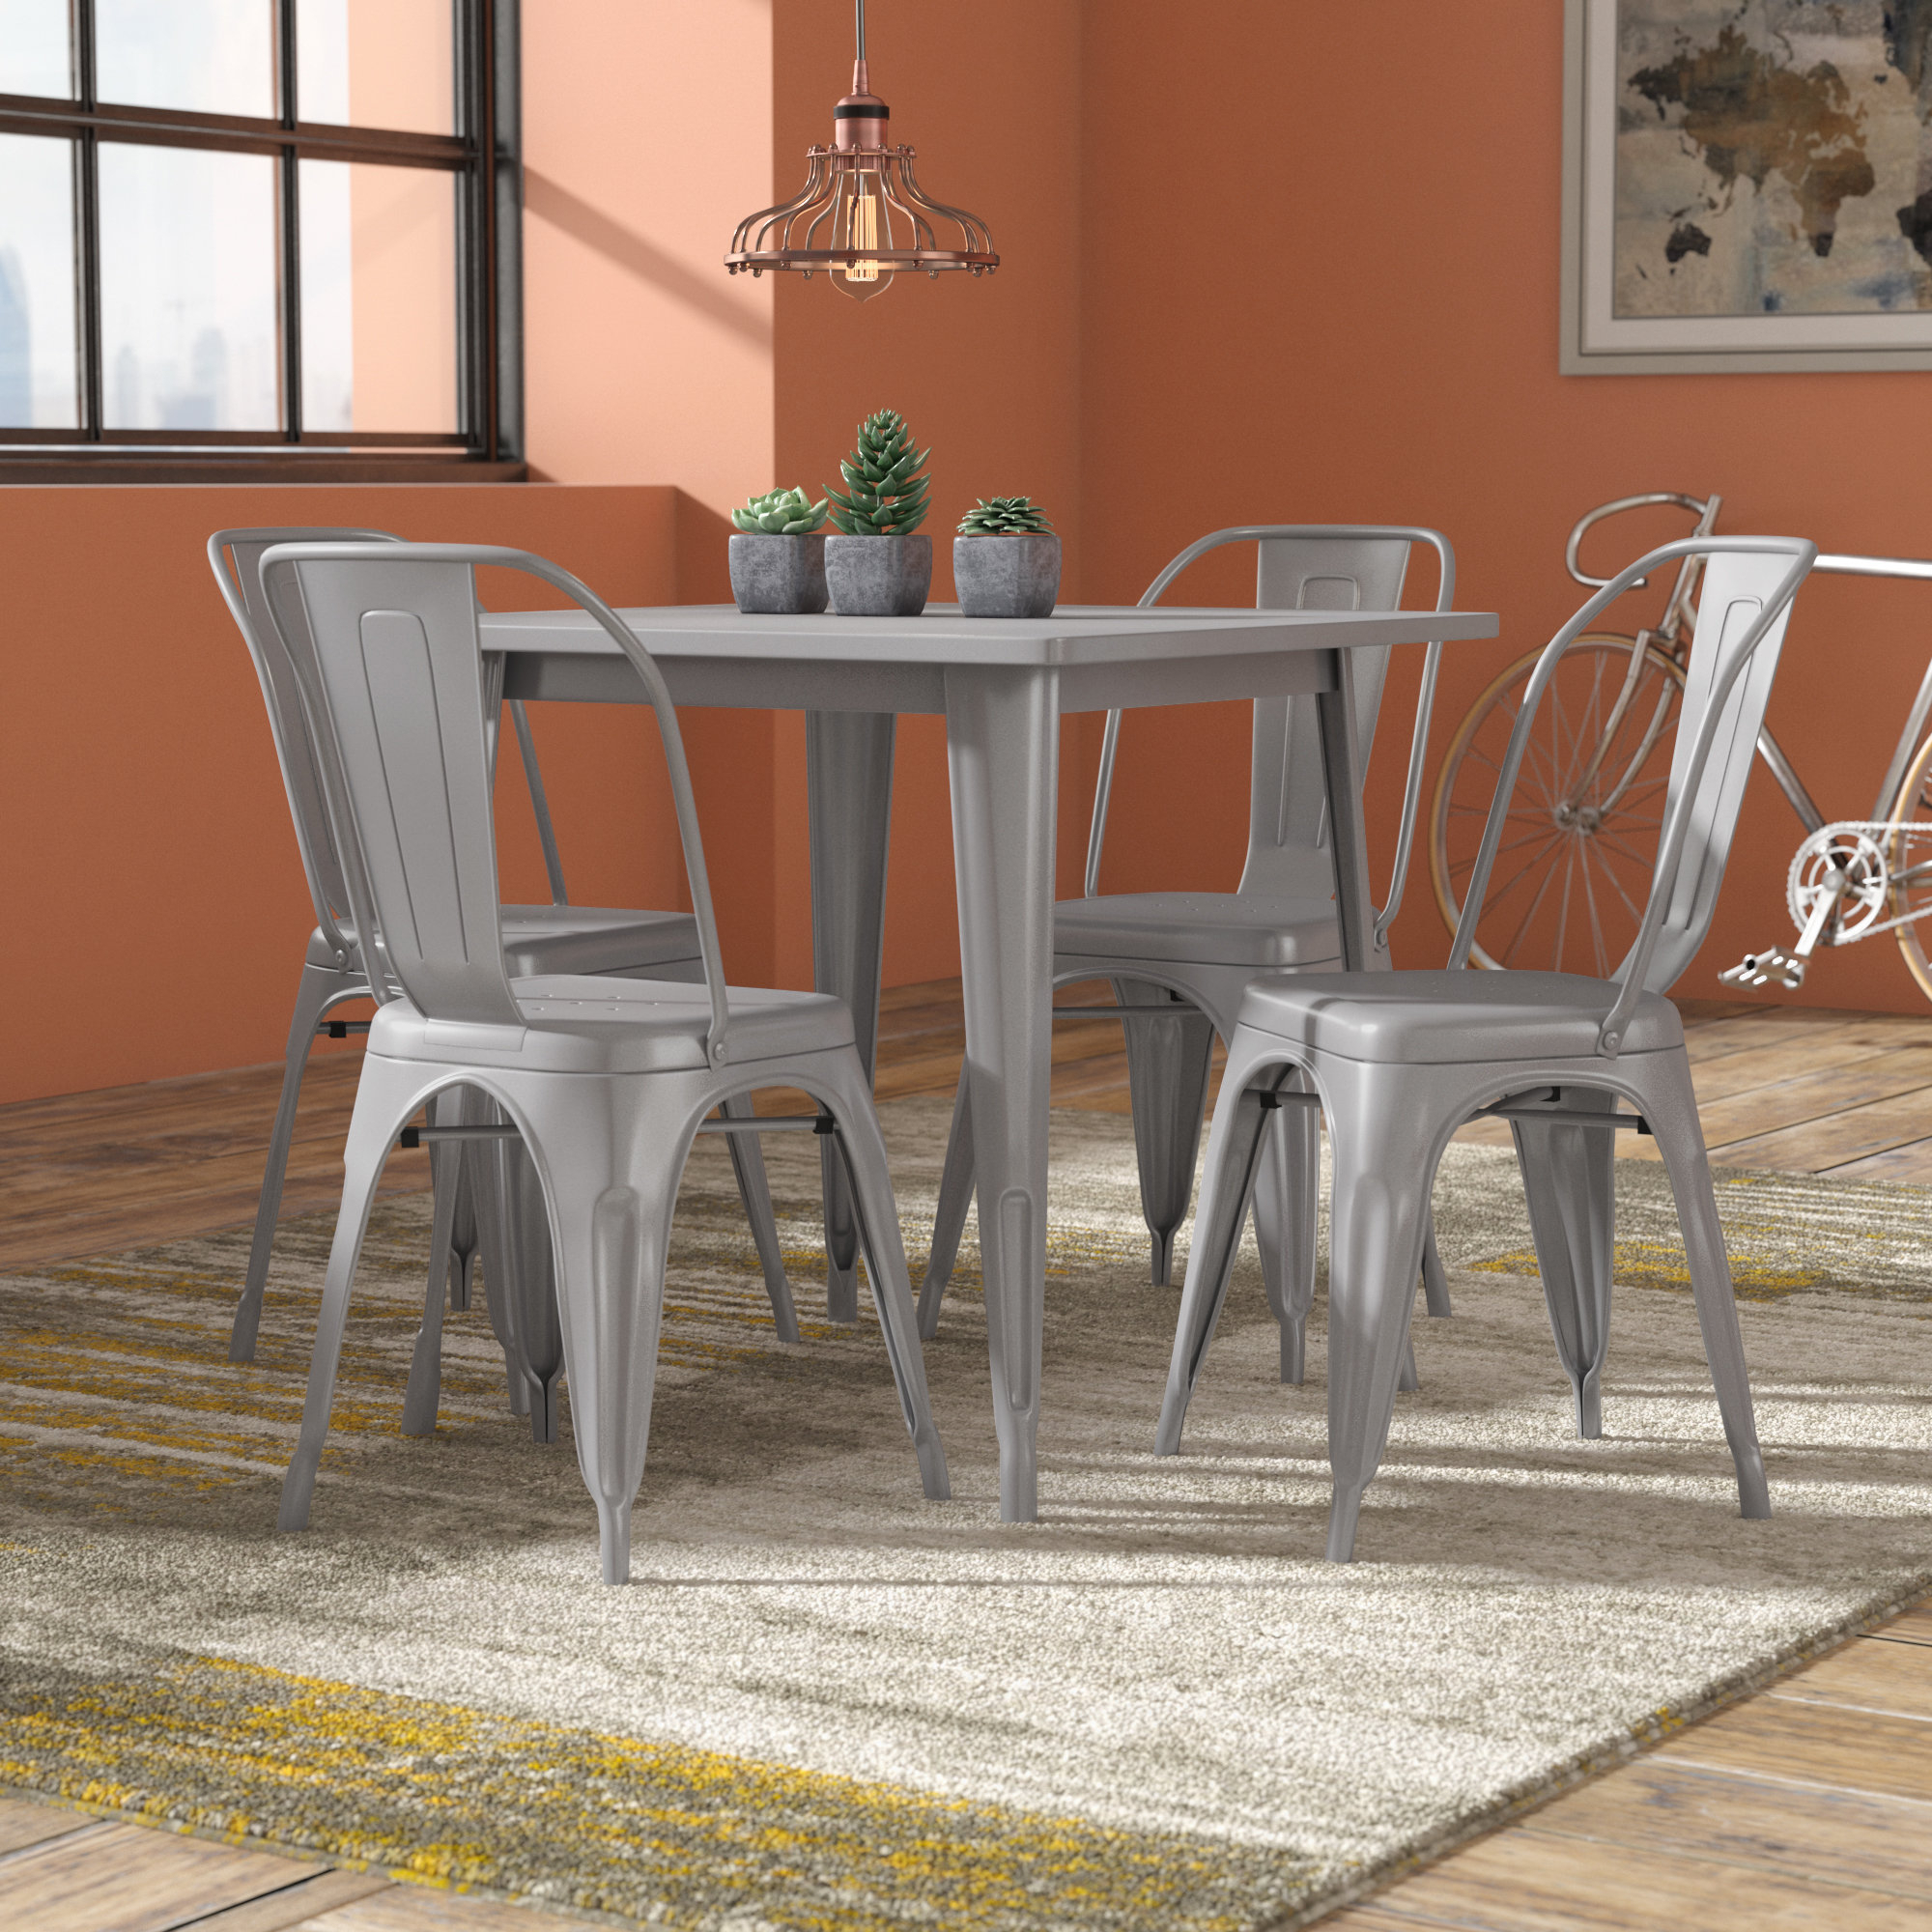 Wayfair Intended For Mulvey 5 Piece Dining Sets (View 18 of 25)